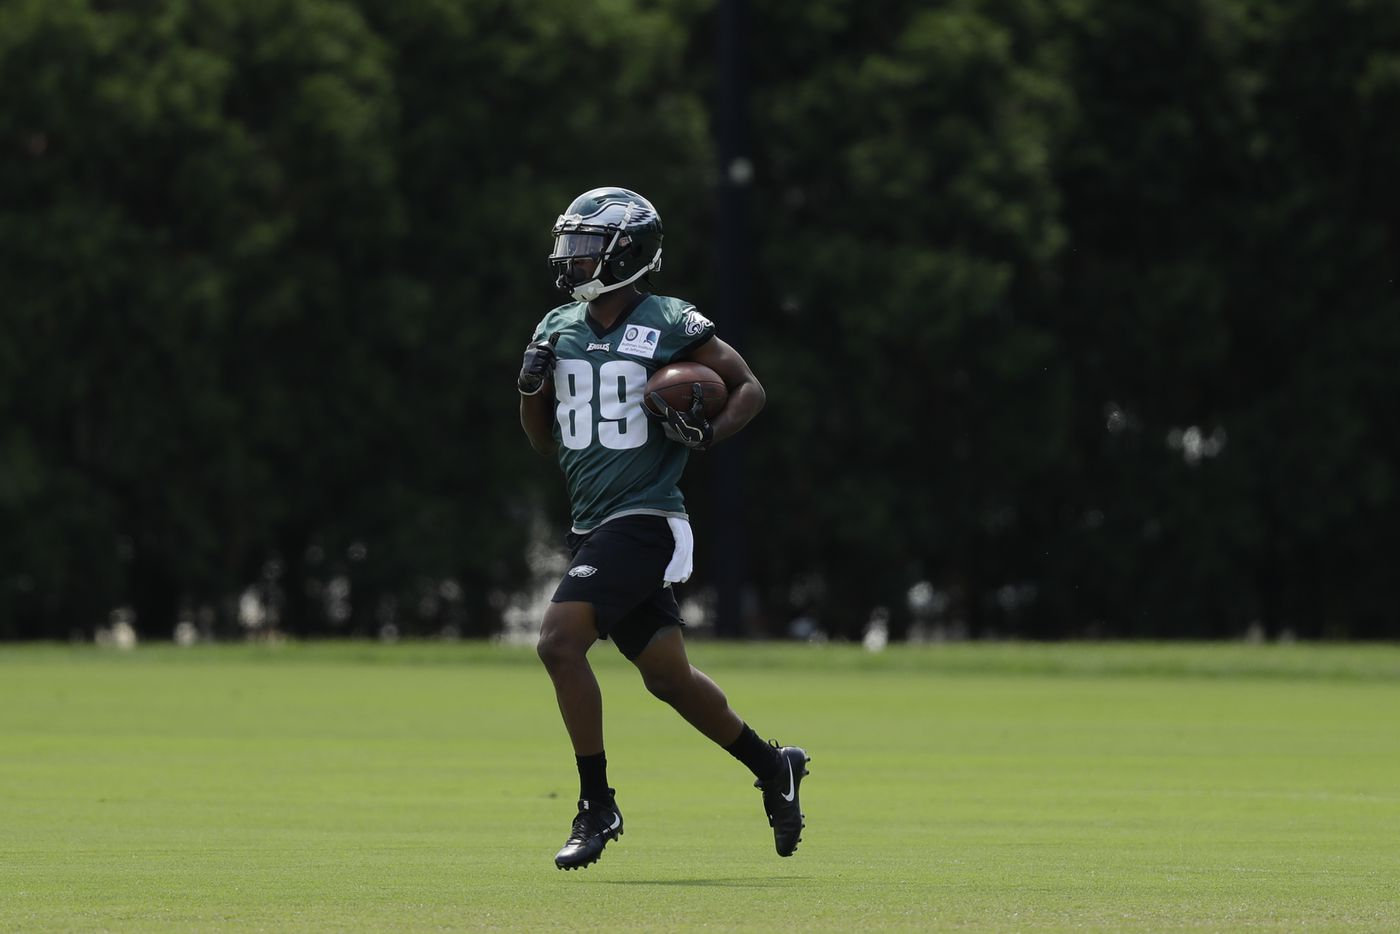 Scary moment for Eagles receiver Greg Ward, but he seems to be OK